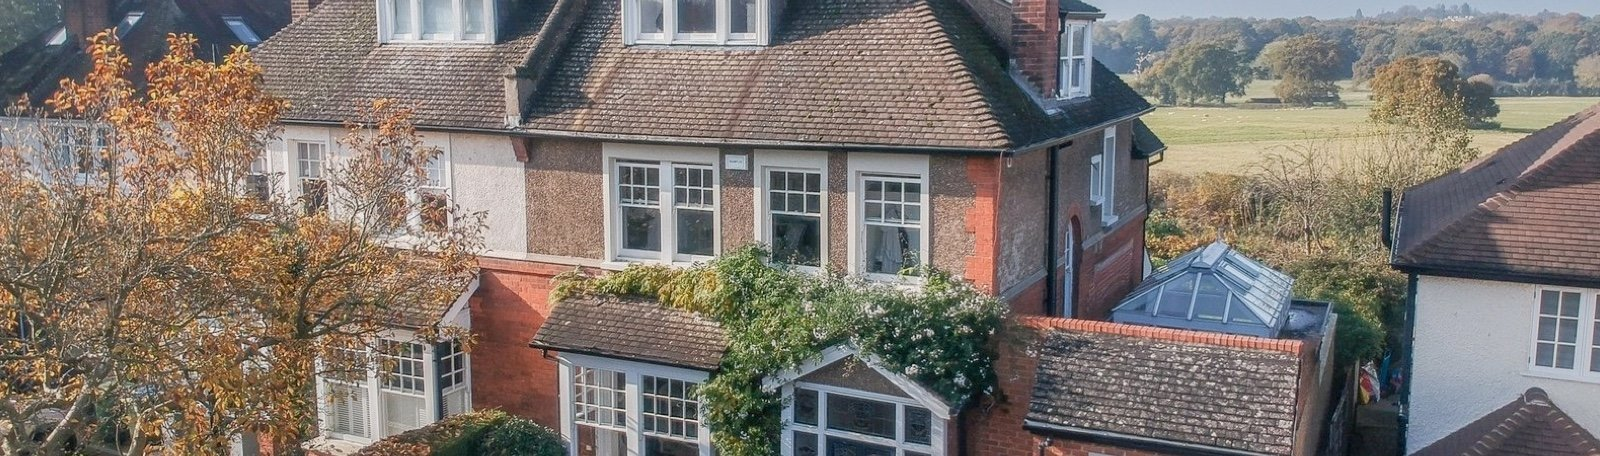 Edwardian house for sale in Claygate